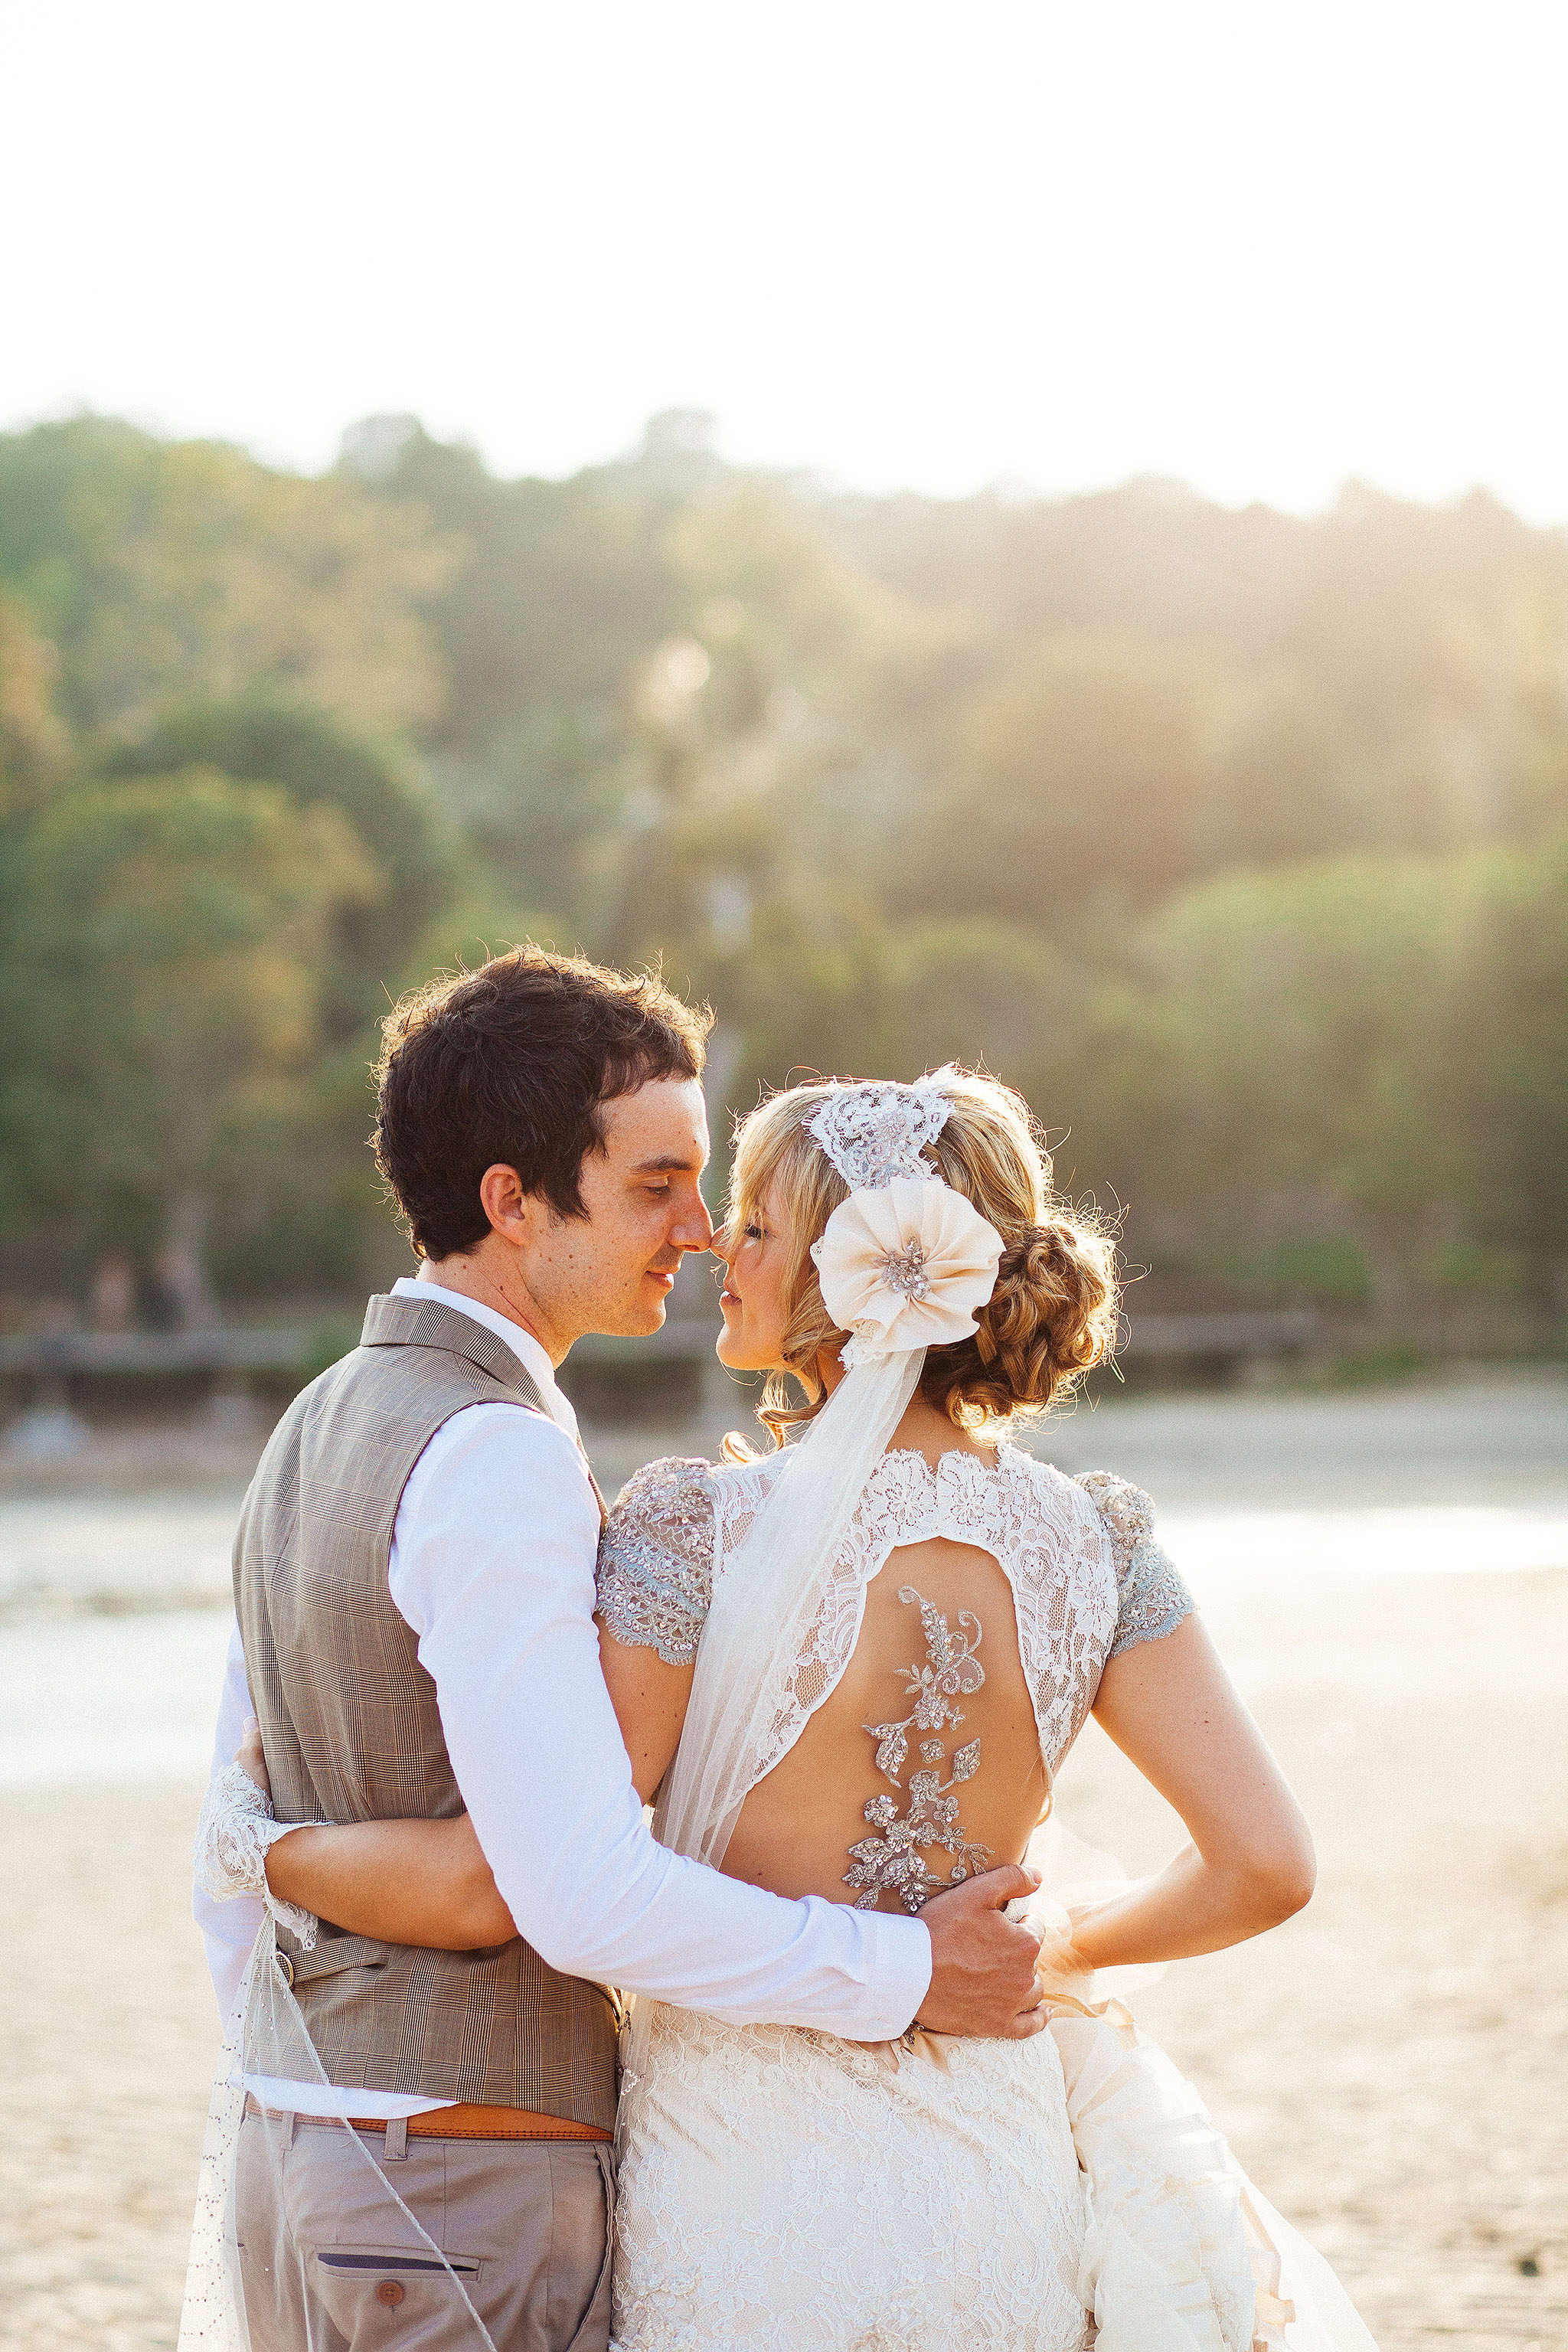 Phuket beach wedding photographer